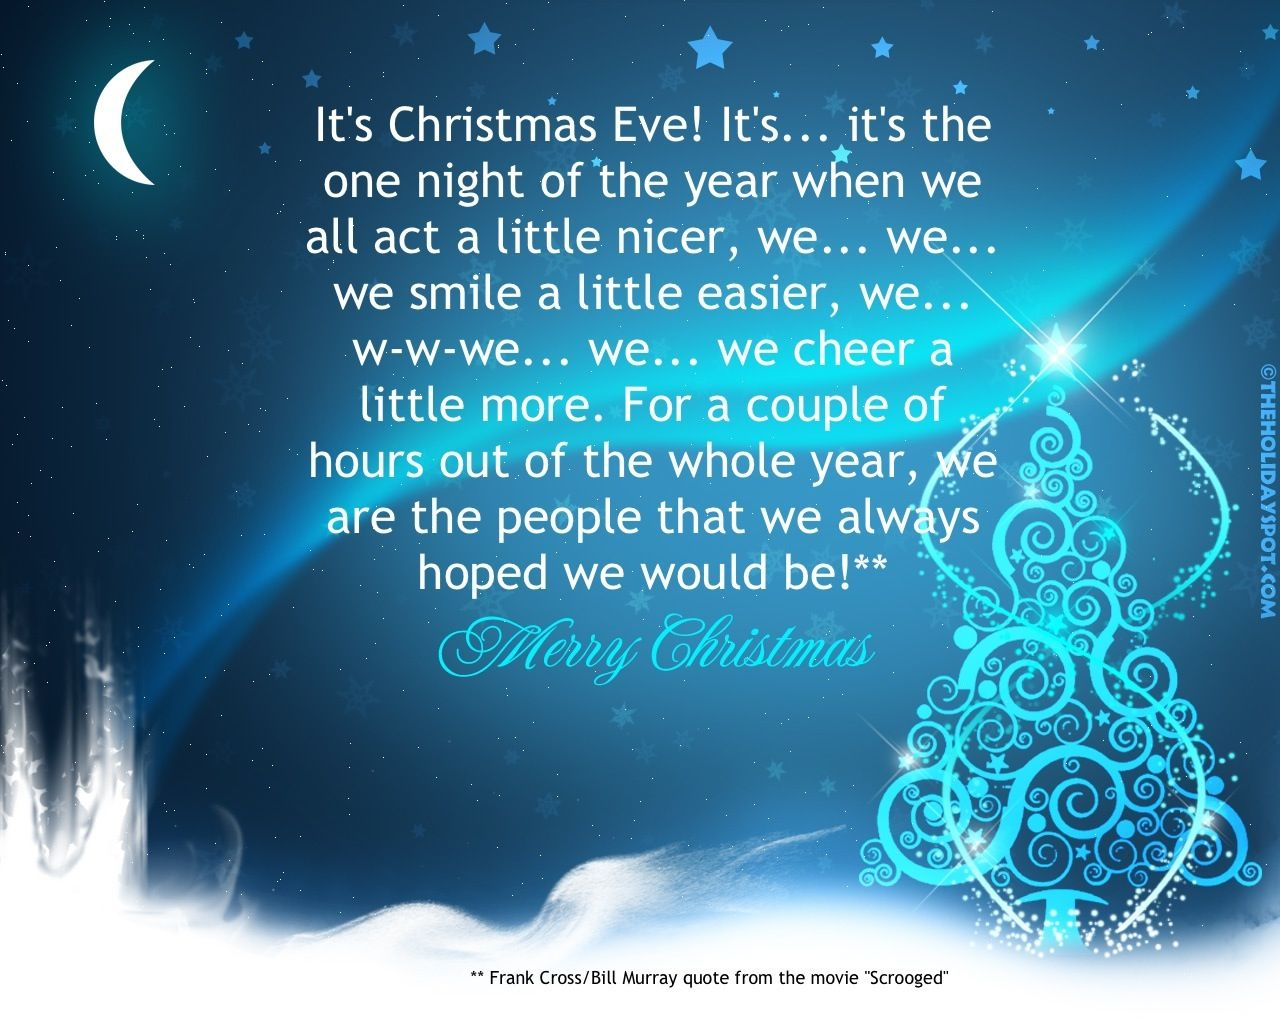 Happy Christmas Eve Merry Christmas Eve Quotes Christmas Eve Quotes Happy Christmas Eve